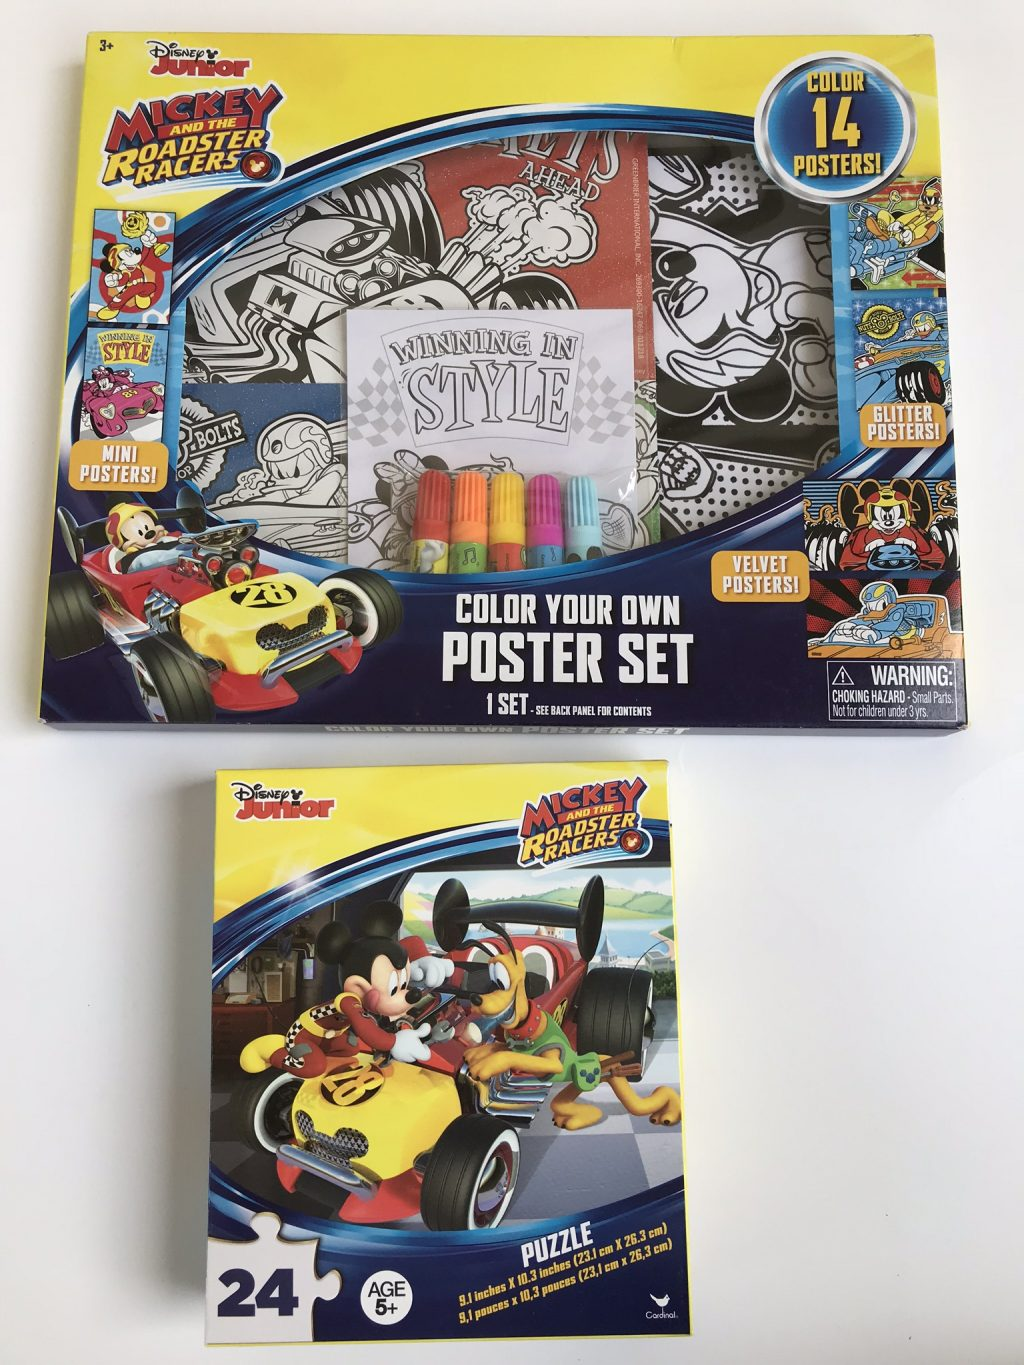 mickey roadster racers colorin set and puzzle